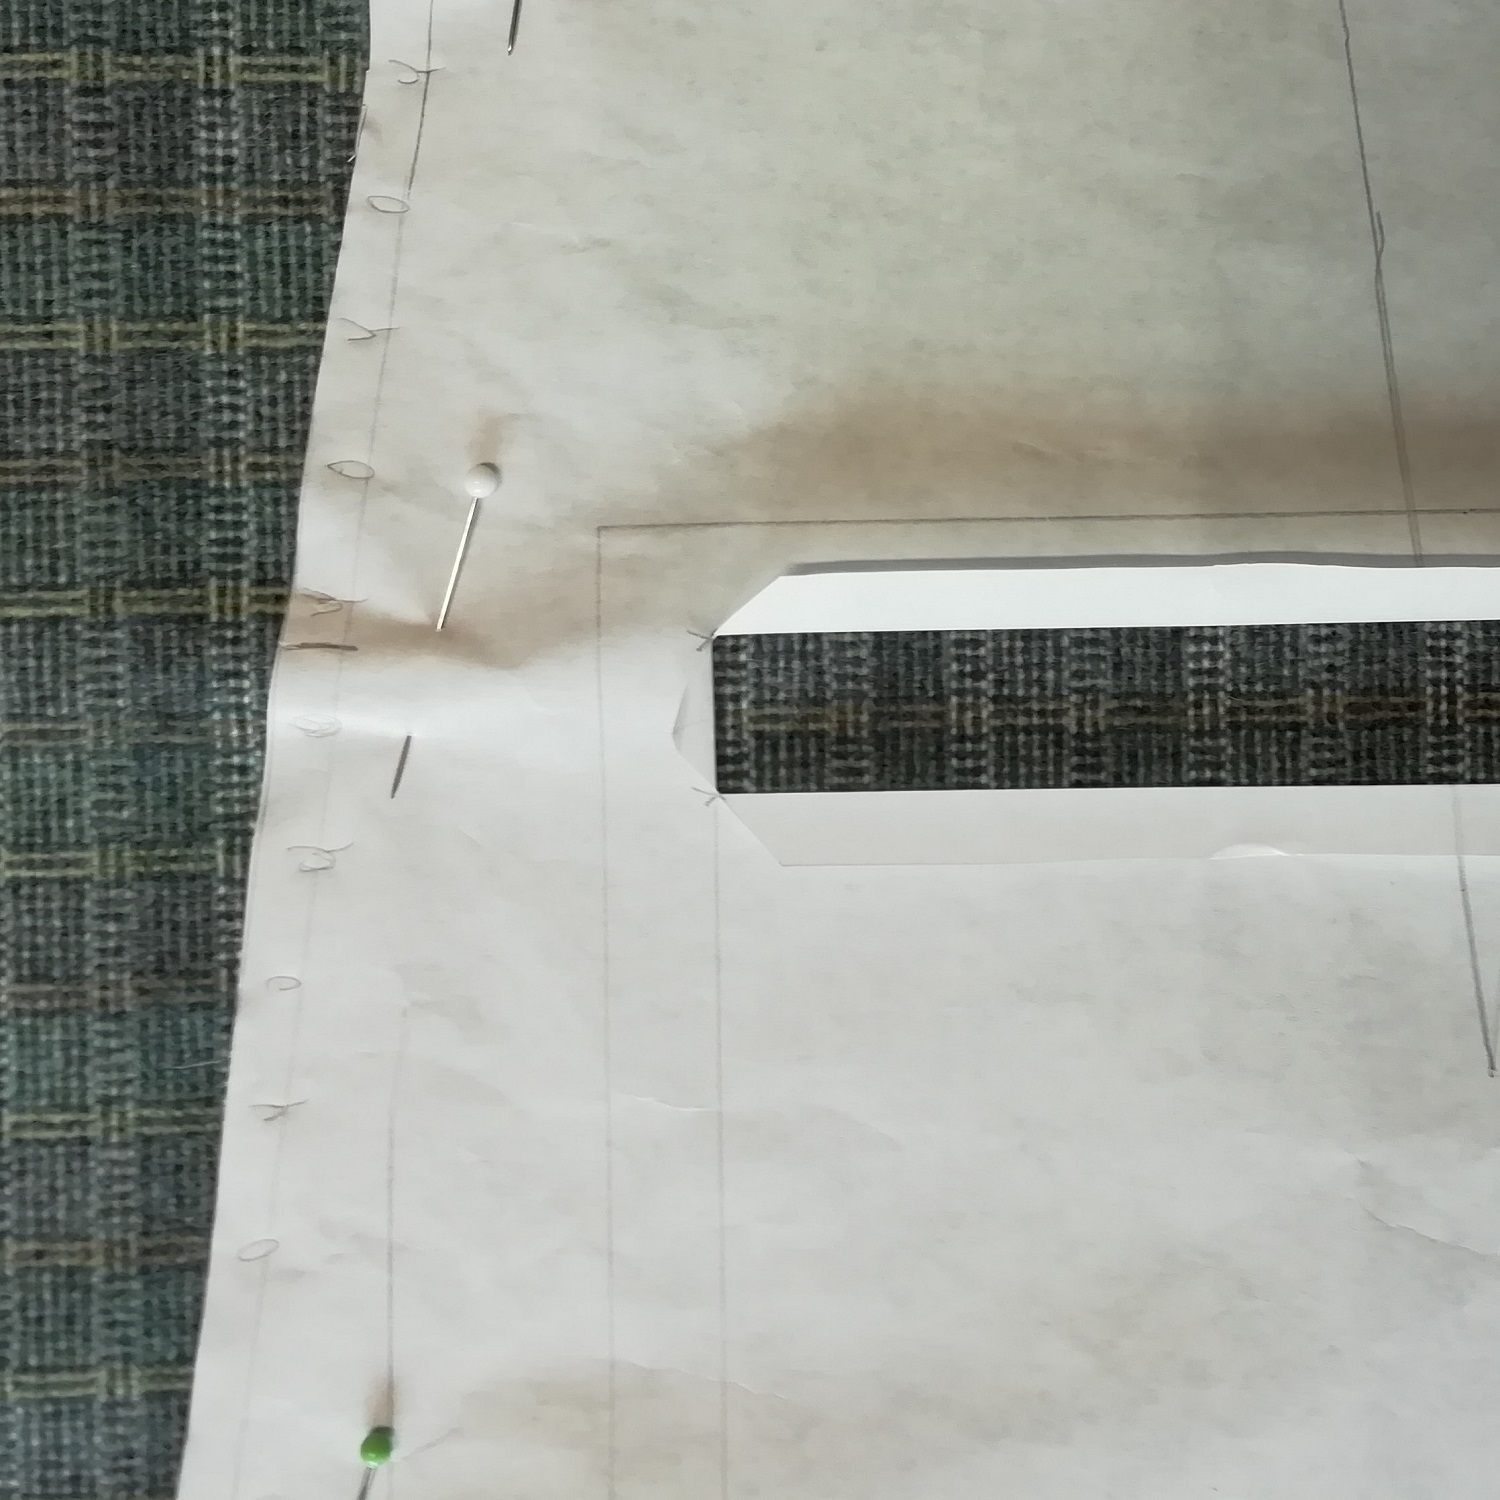 Positioning paper pattern on check fabric.